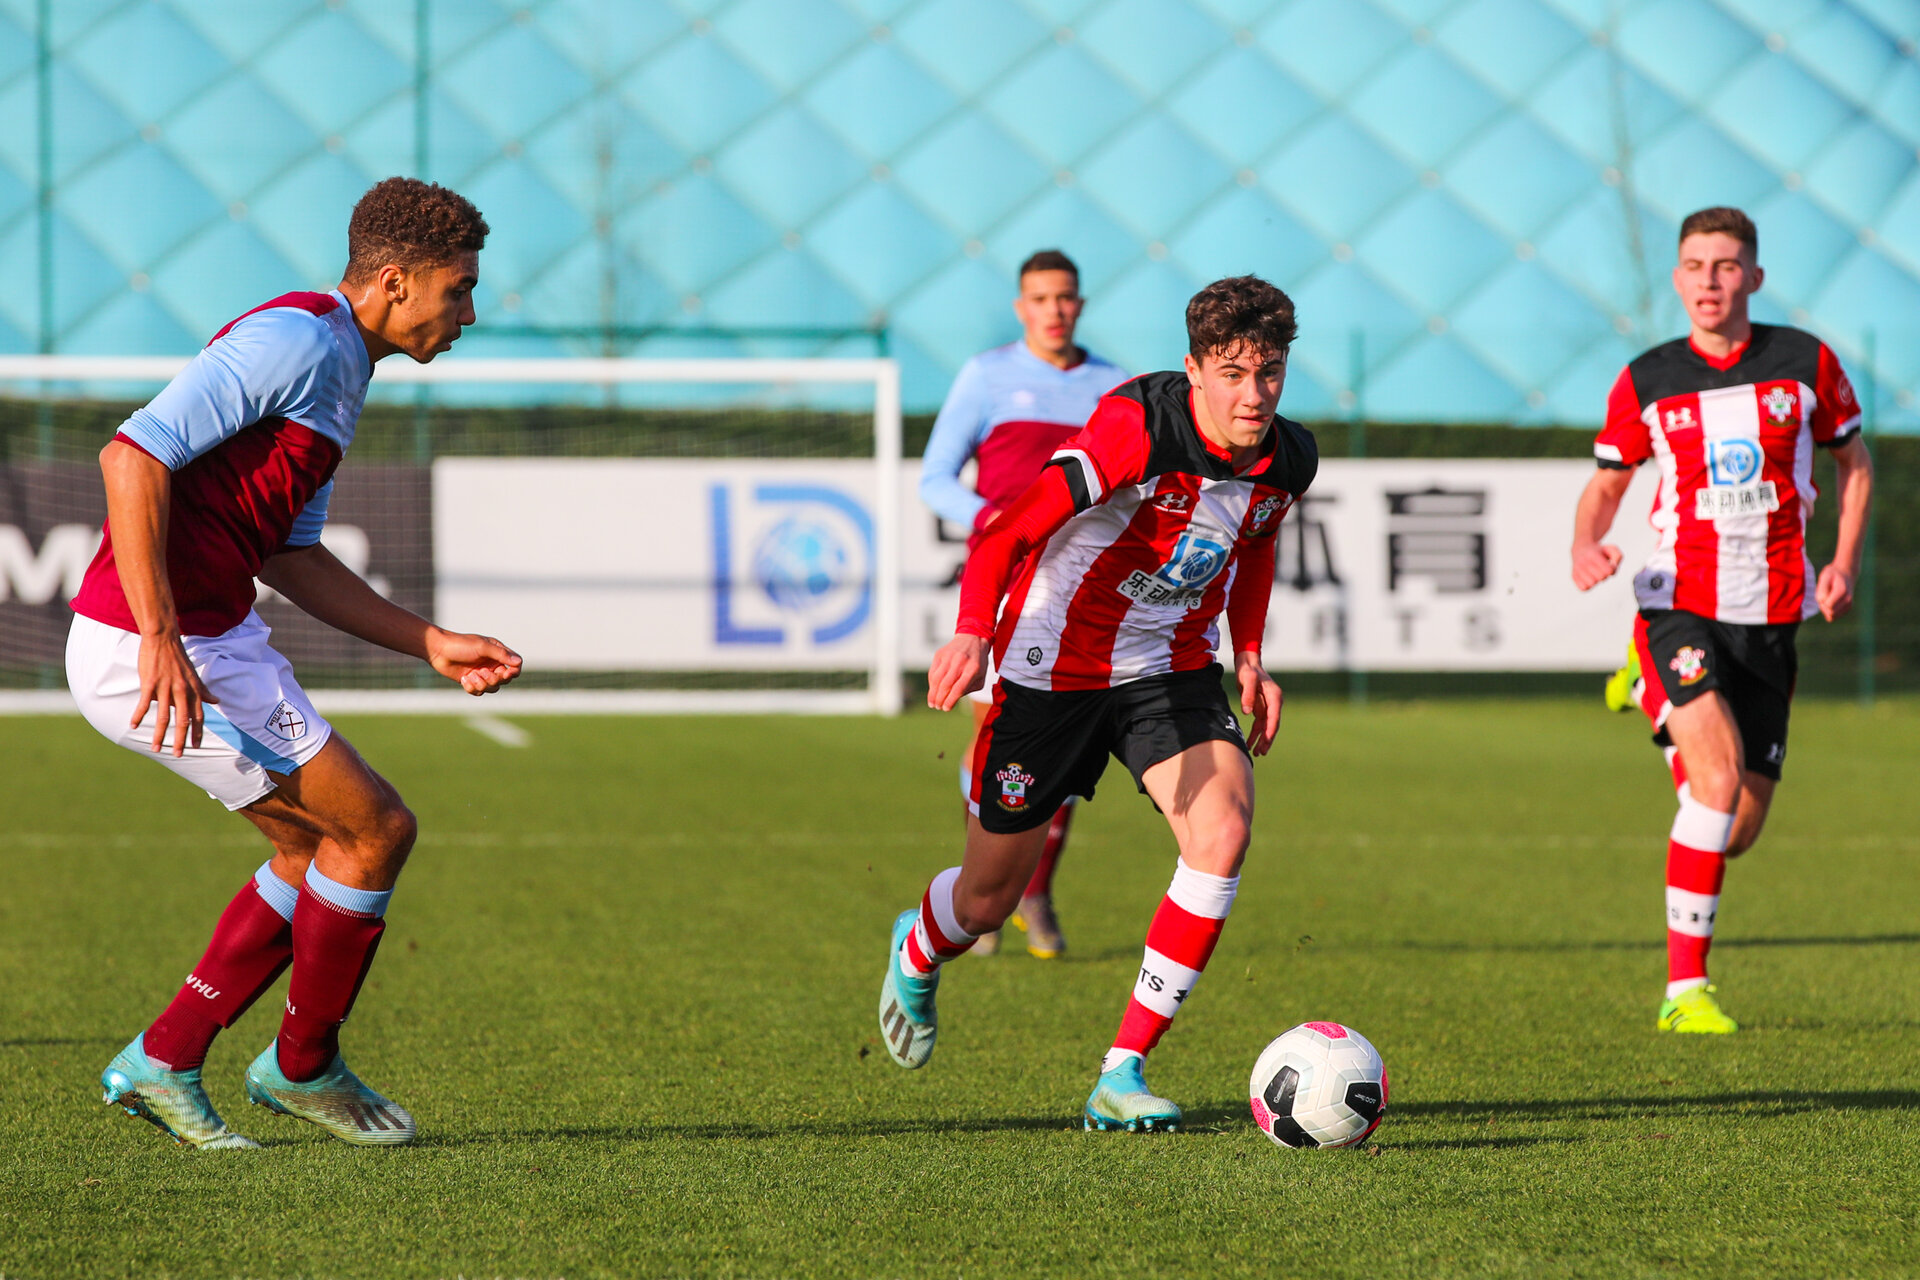 SOUTHAMPTON, ENGLAND - DECEMBER 07: Marco Rus of Southampton FC takes on an opponent during the Barclays Under 18 Premier League match between Southampton FC and West Ham United at the Staplewood Campus on December 07, 2019 in Southampton, England